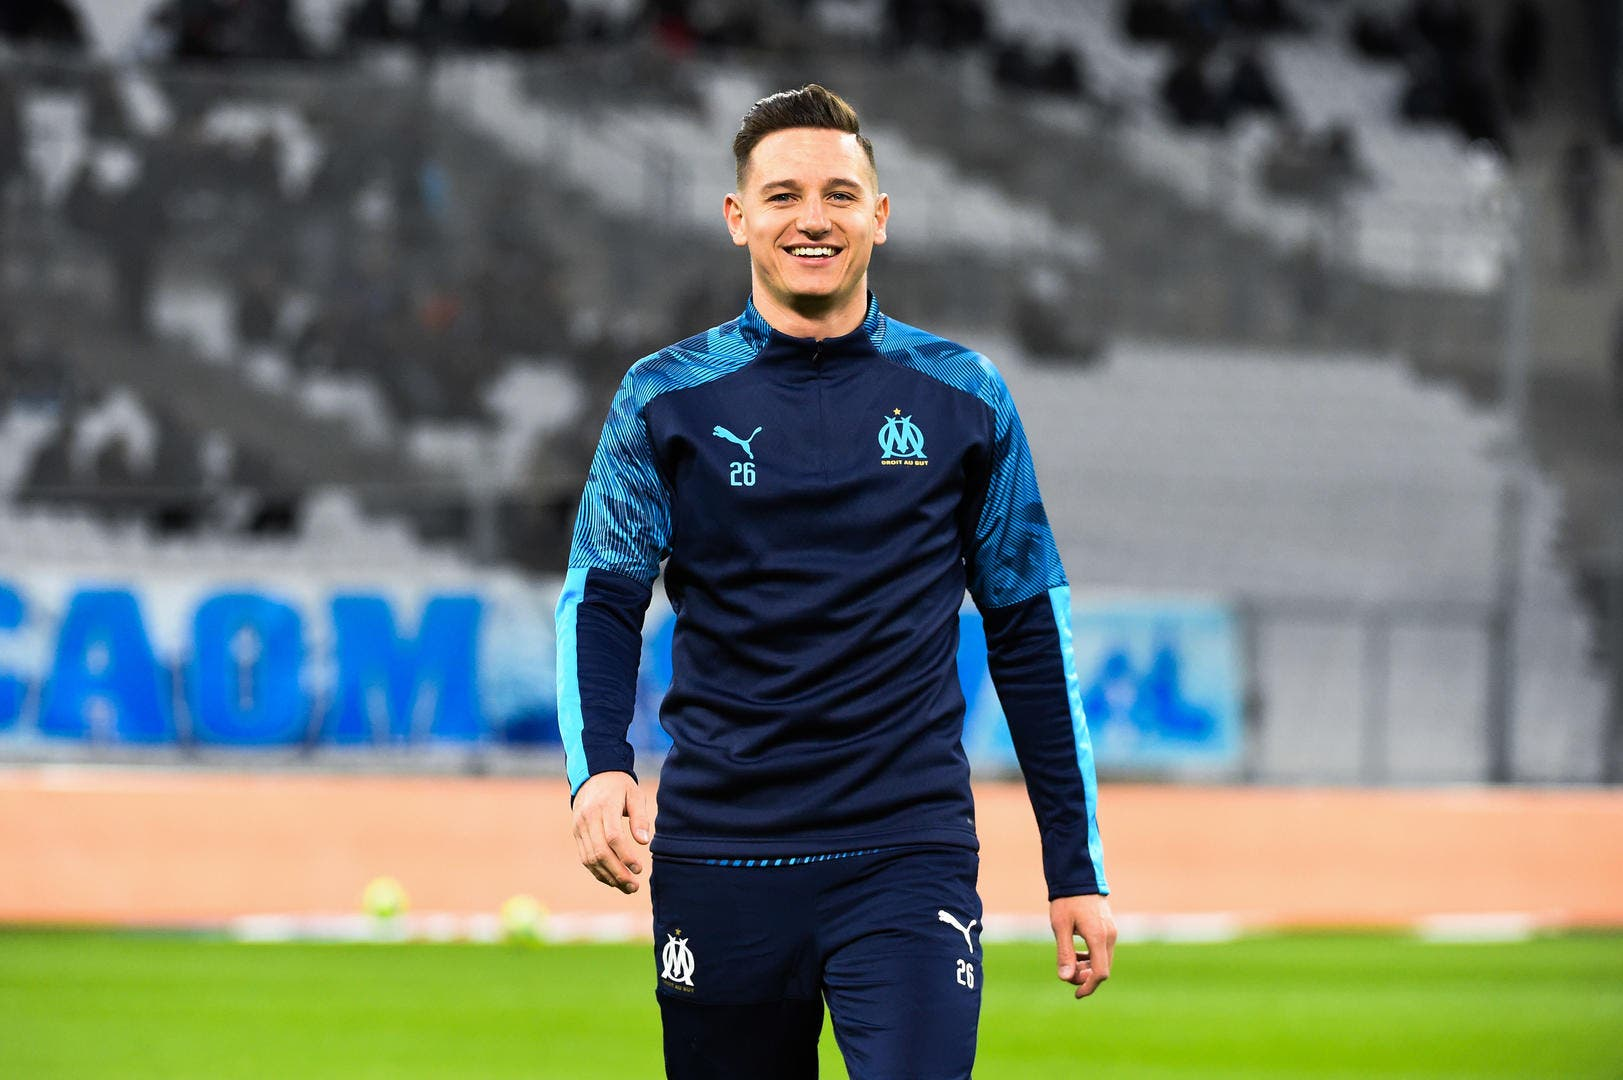 https://www.foot01.com/img/images/1920x1080/2020/Apr/26/om-thauvin-l-officialise-il-refuse-de-quitter-marseille-icon_adim_060320_34_149,283575.jpg